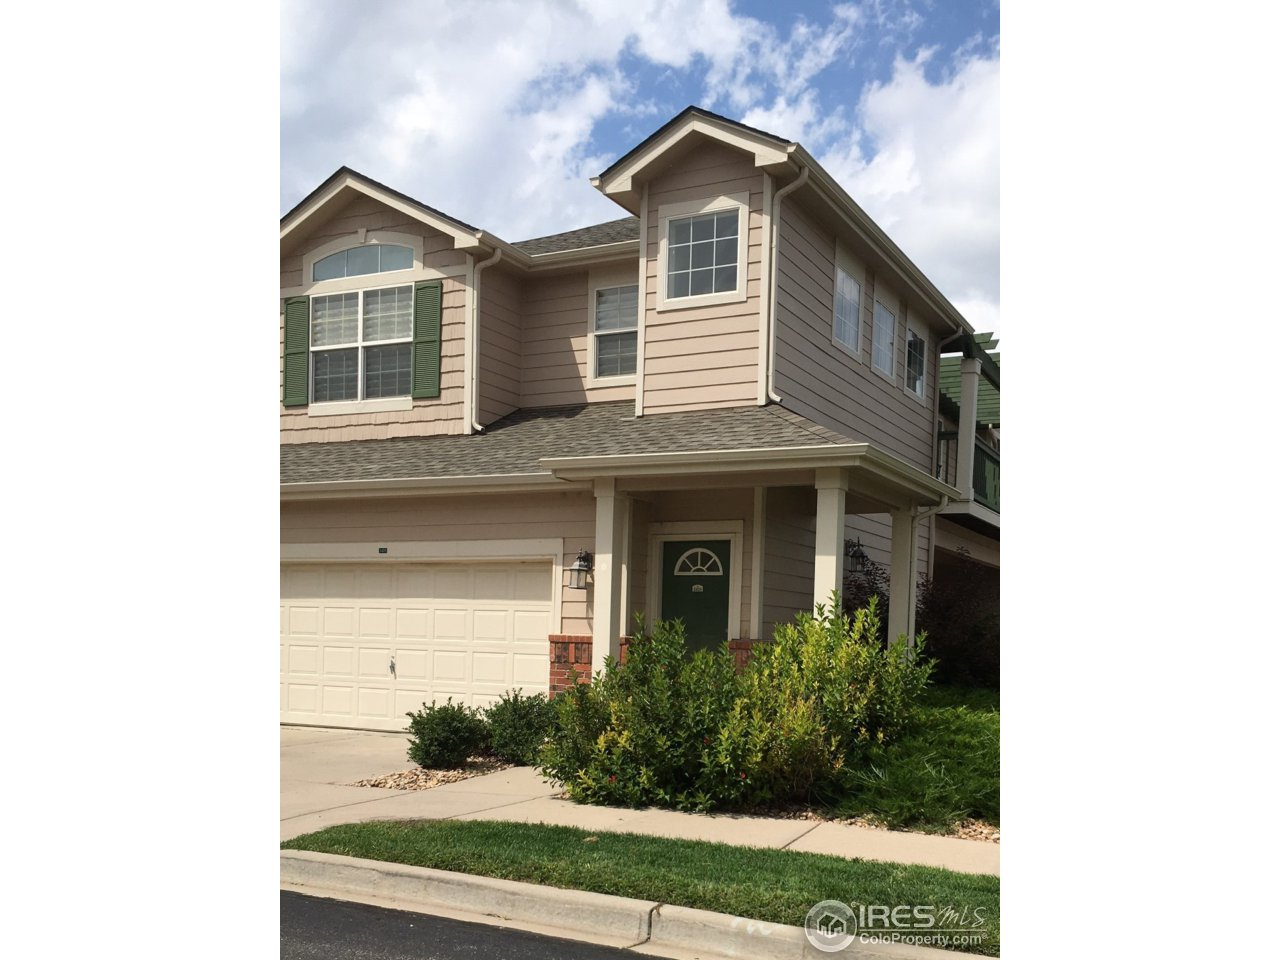 4672 W 20th St Rd 2425, Greeley, CO 80634